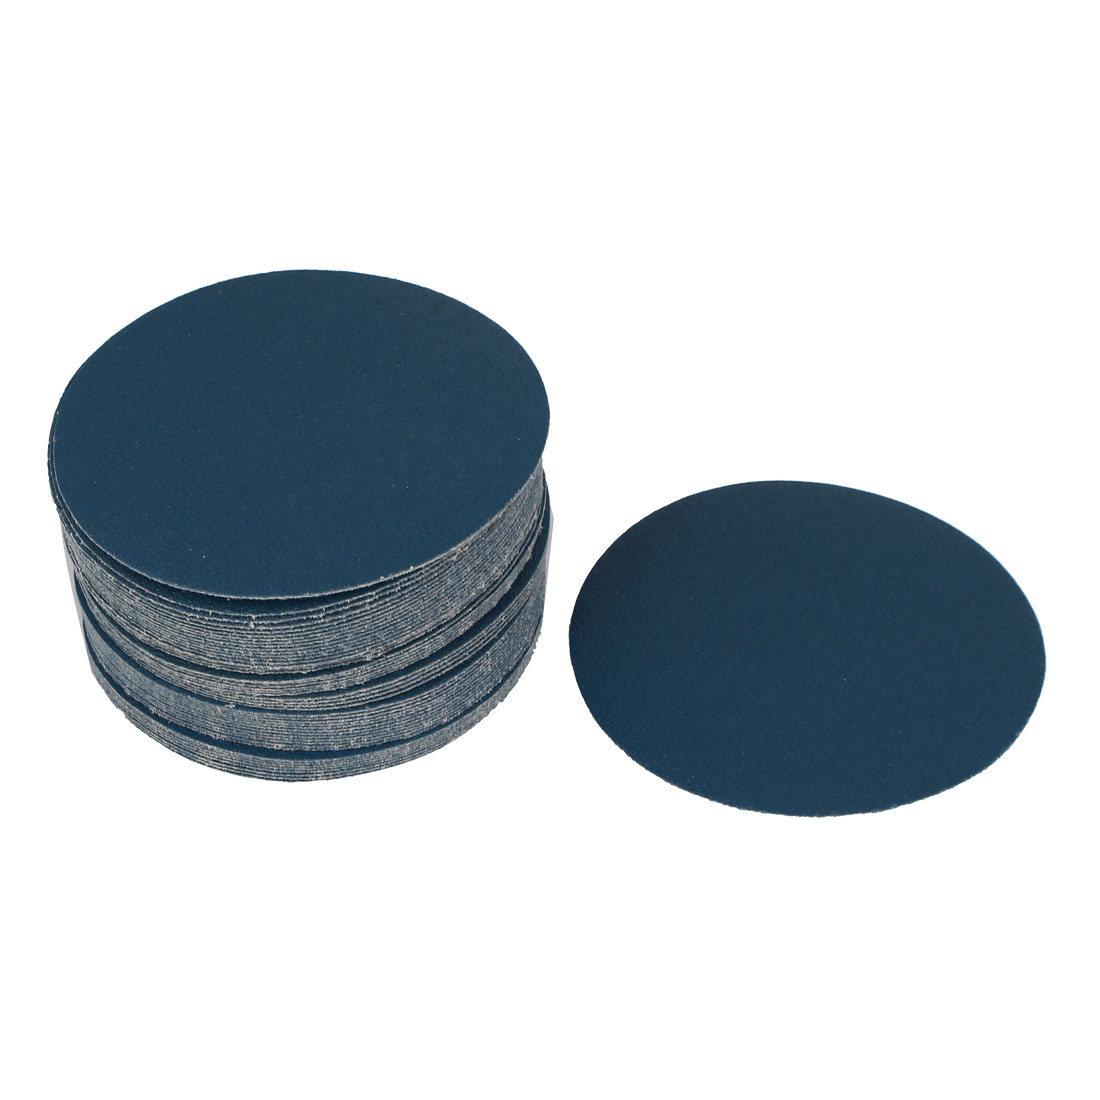 "5"" Sandpaper Auto Car Paint Polishing Sanding Disc Hook and Loop Fastener 100 Grit 50pcs"